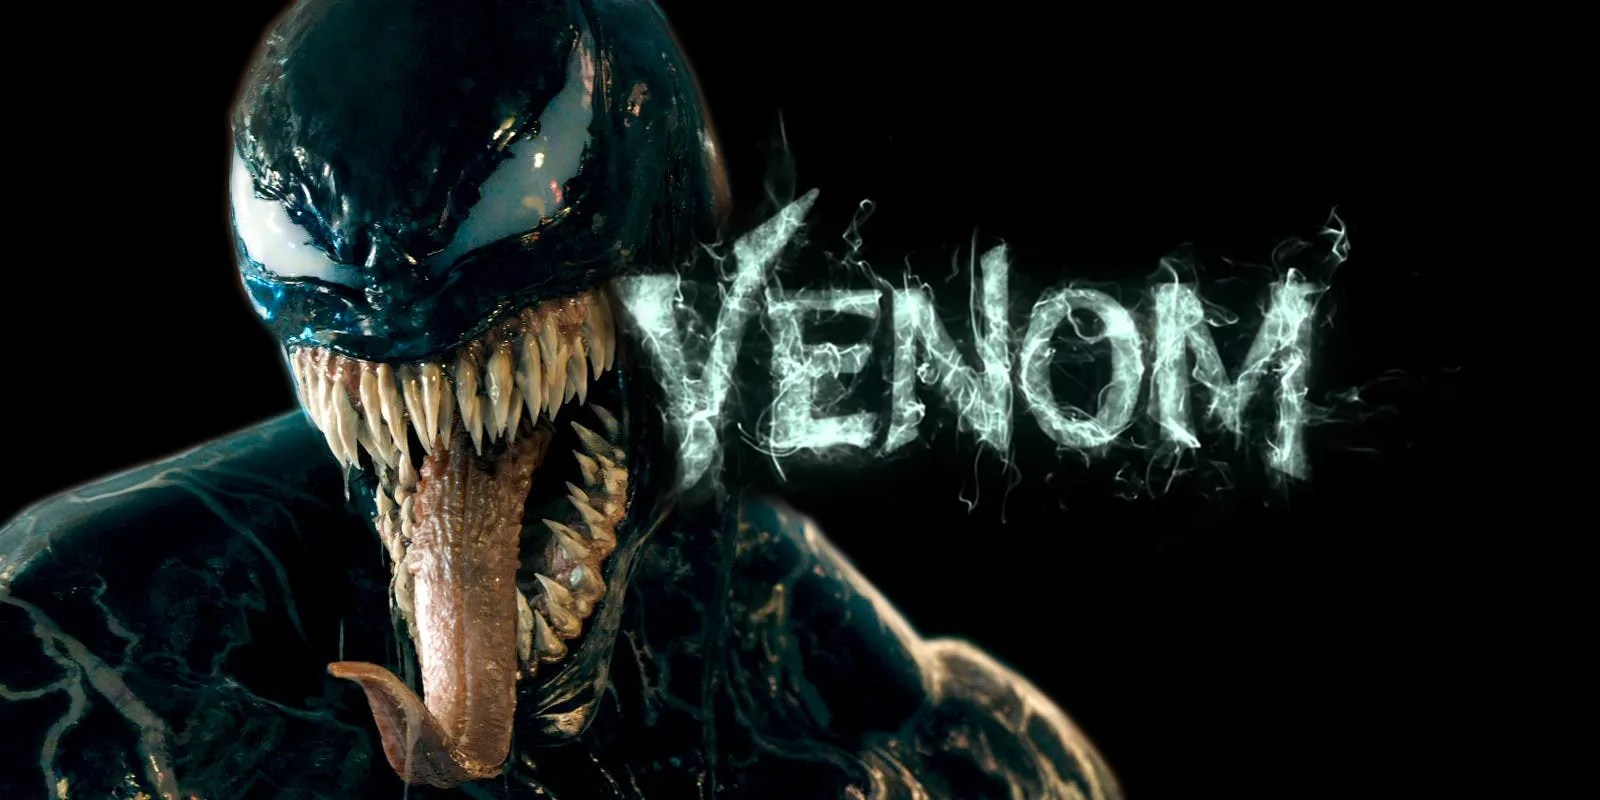 Venom Movie Trailer Cast Every Update You Need To Know